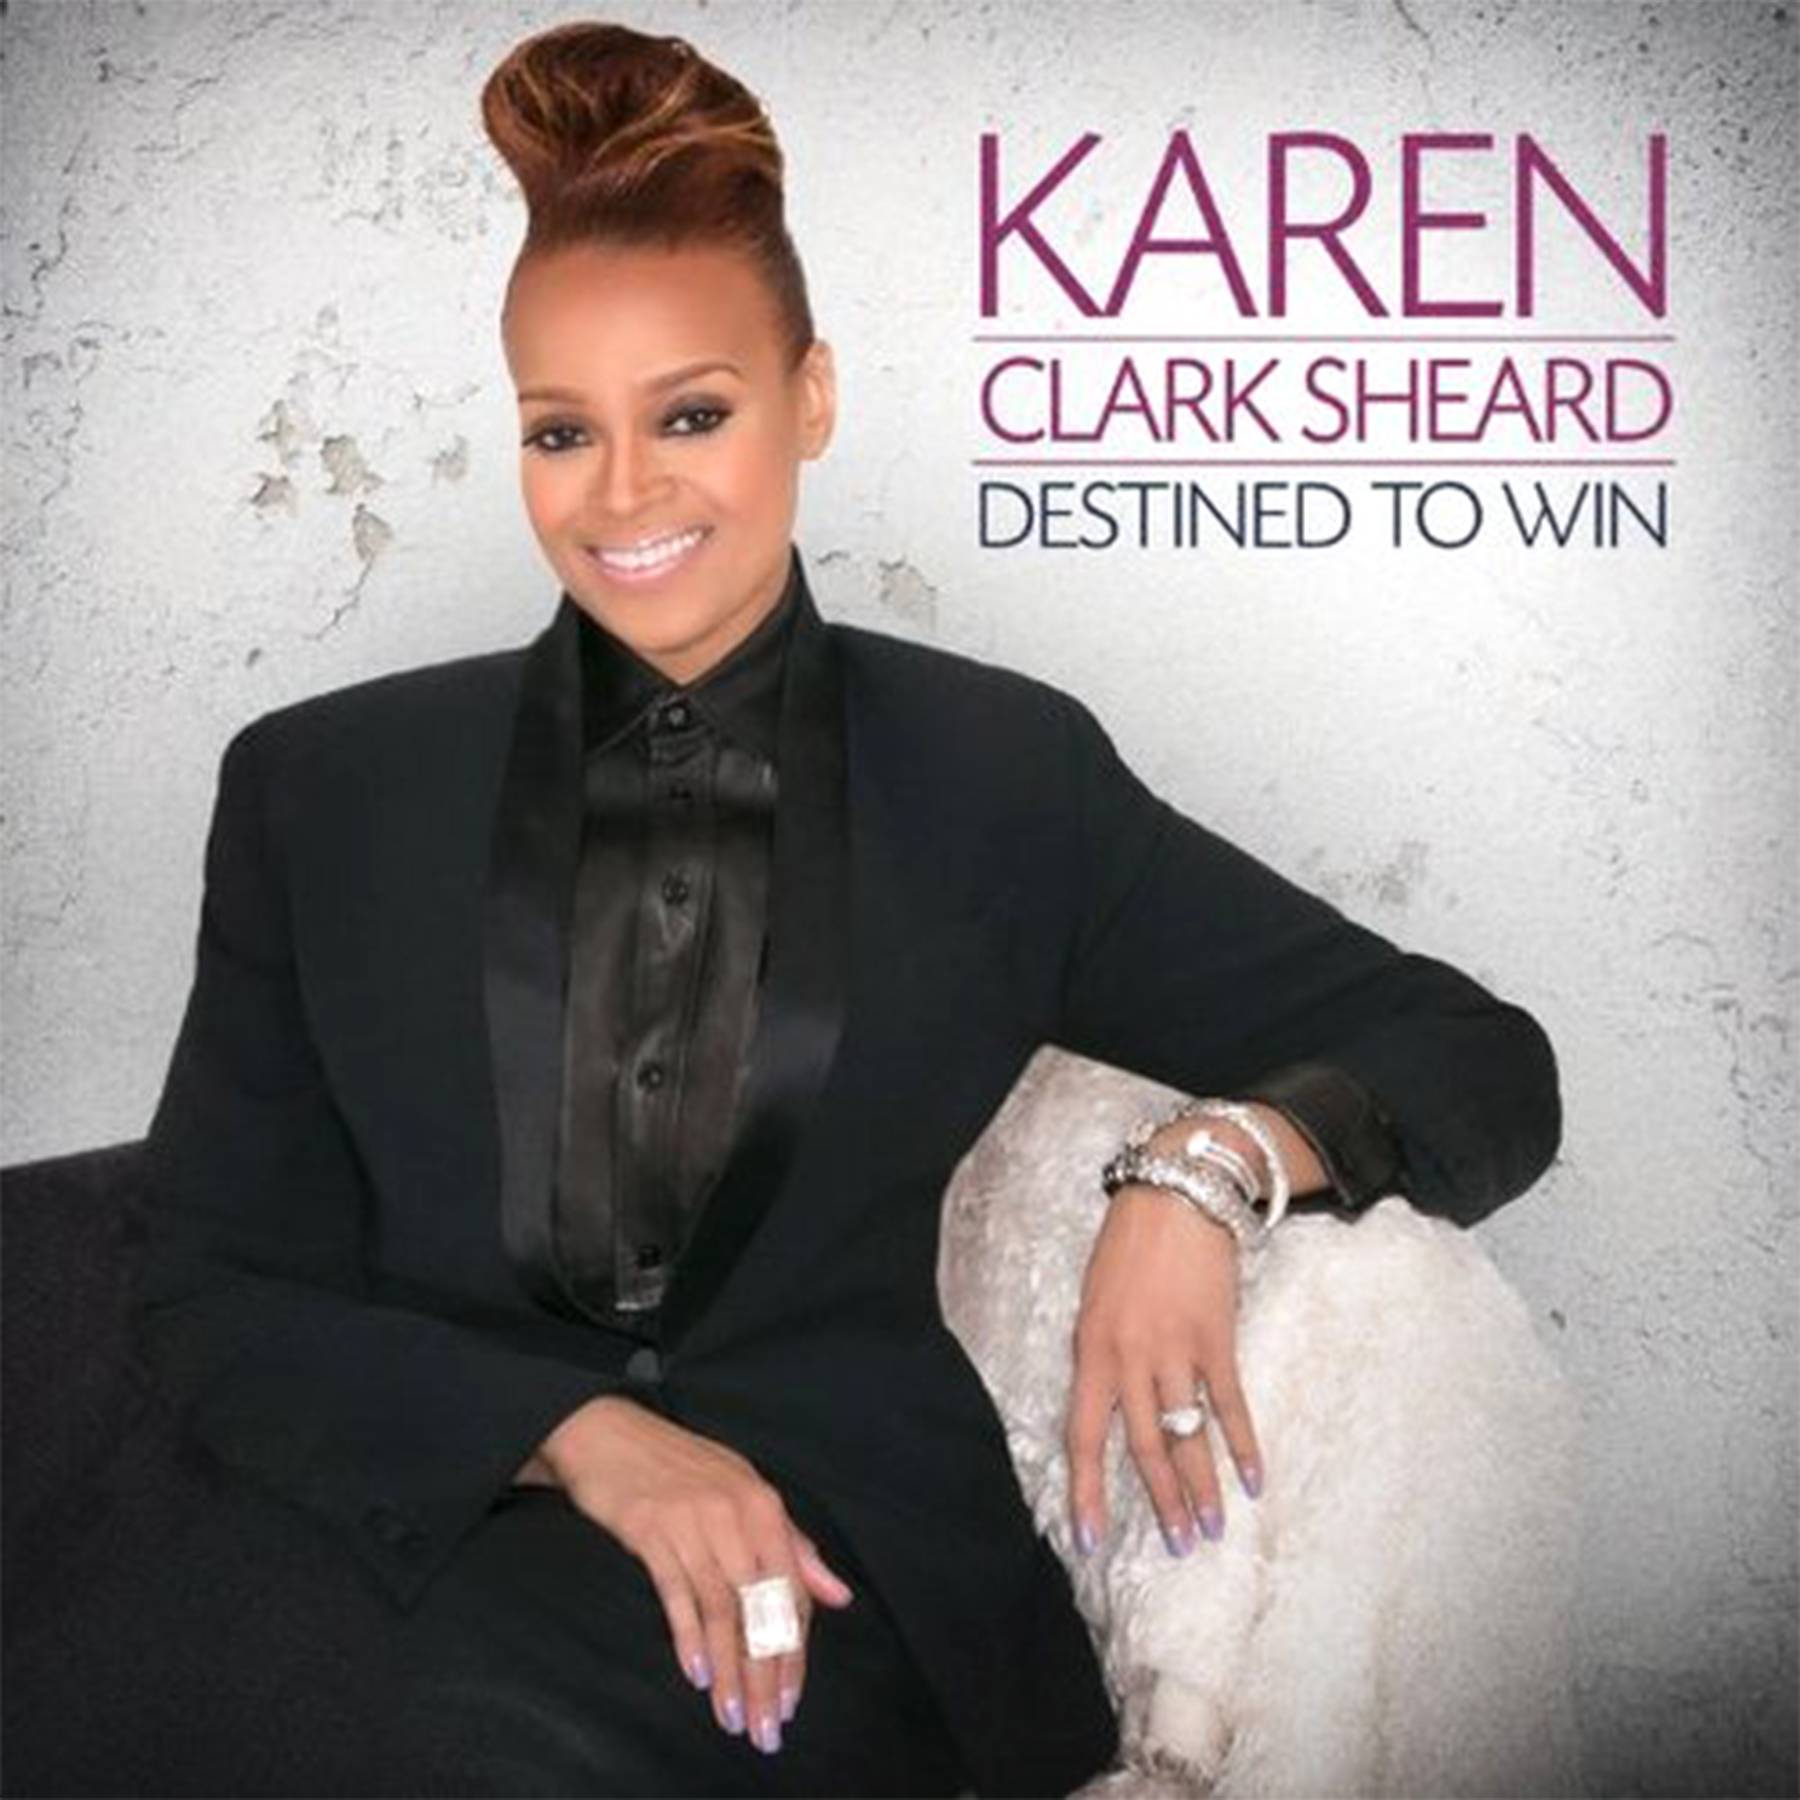 The Future  - The future is bright for Karen Clark Sheard ?she is celebrating the release of her latest album, Destined to Win, which debuted at No. 2 on Billboard?s Gospel Albums chart and at No. 20 on the Billboard Top 200, making it her highest charting debut on the Billboard Top 200 for a solo album.(Photo: Karew Records / Entertainment One Music)